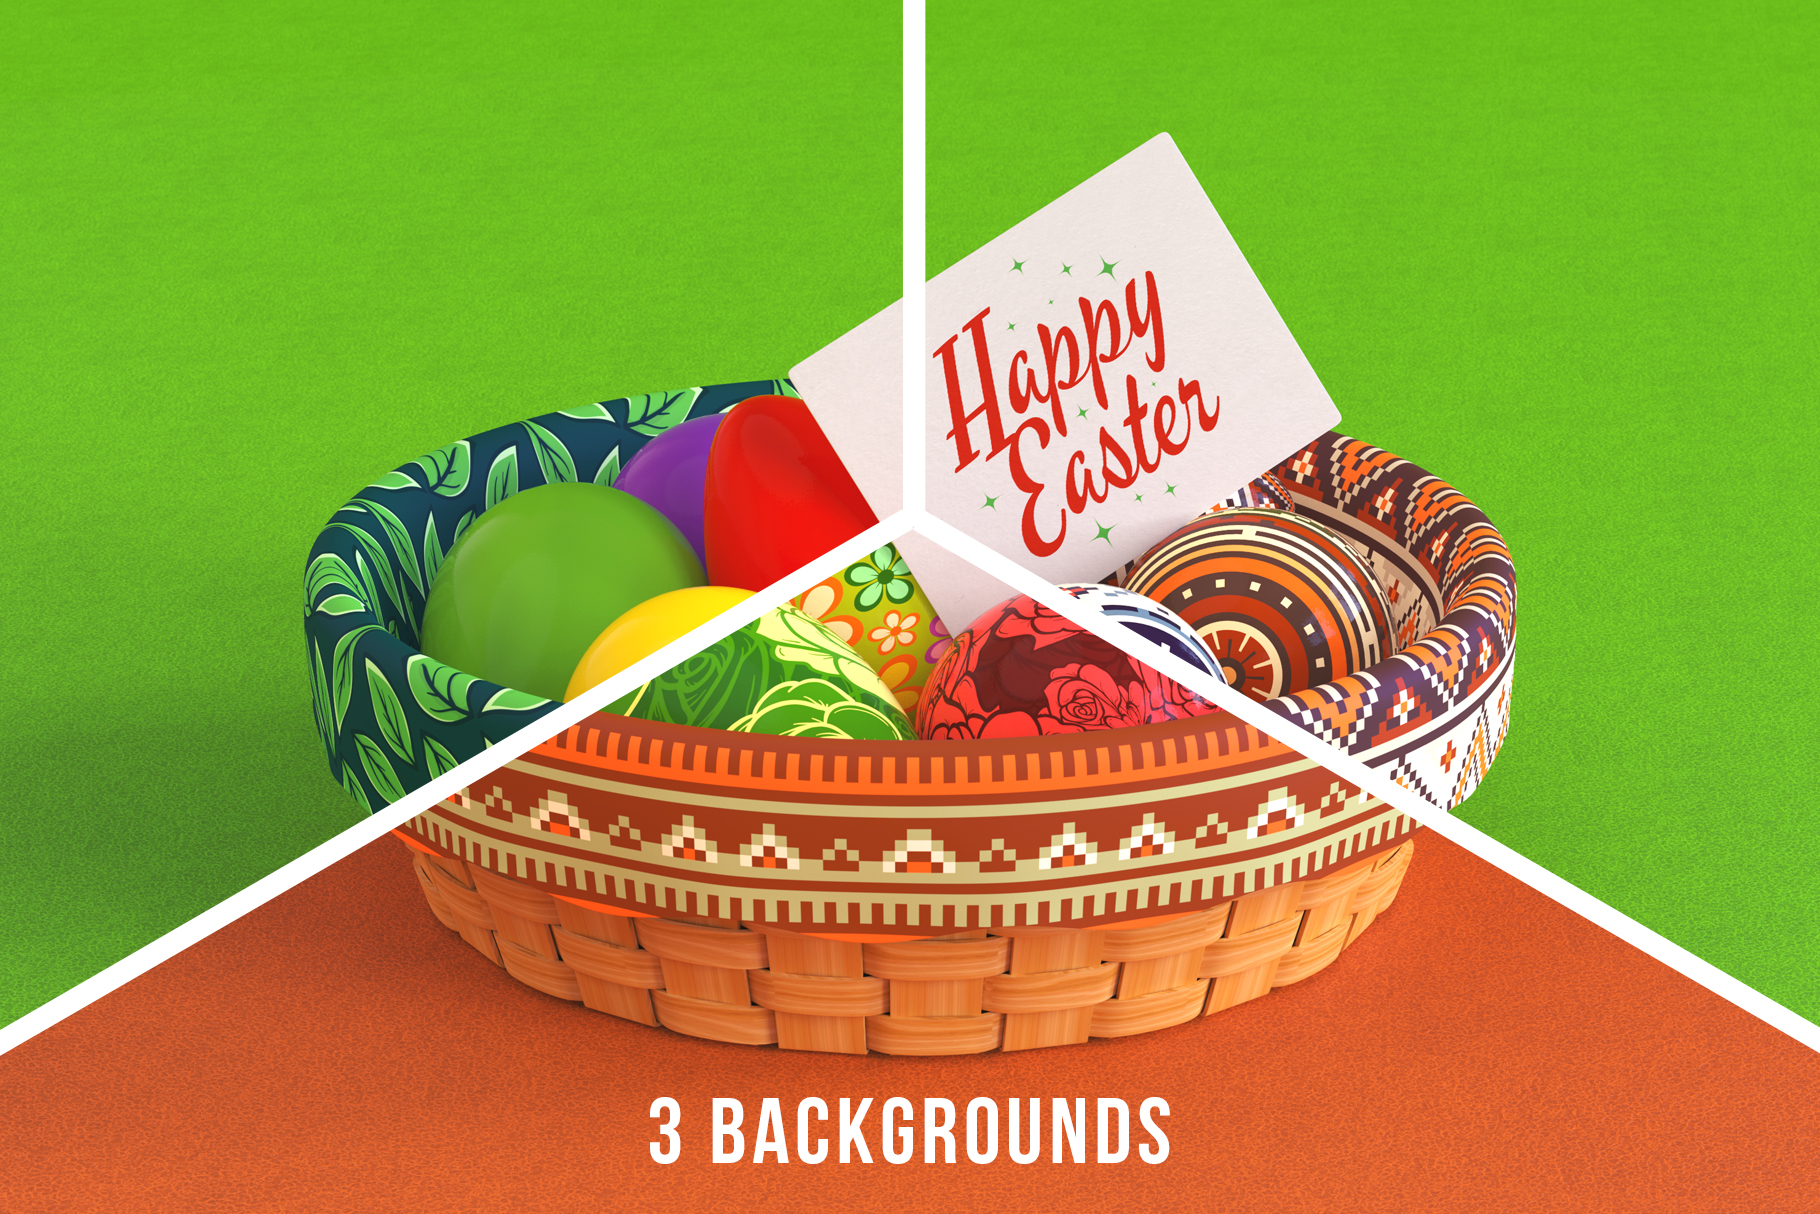 Easter Egg Mockups and Images example image 7